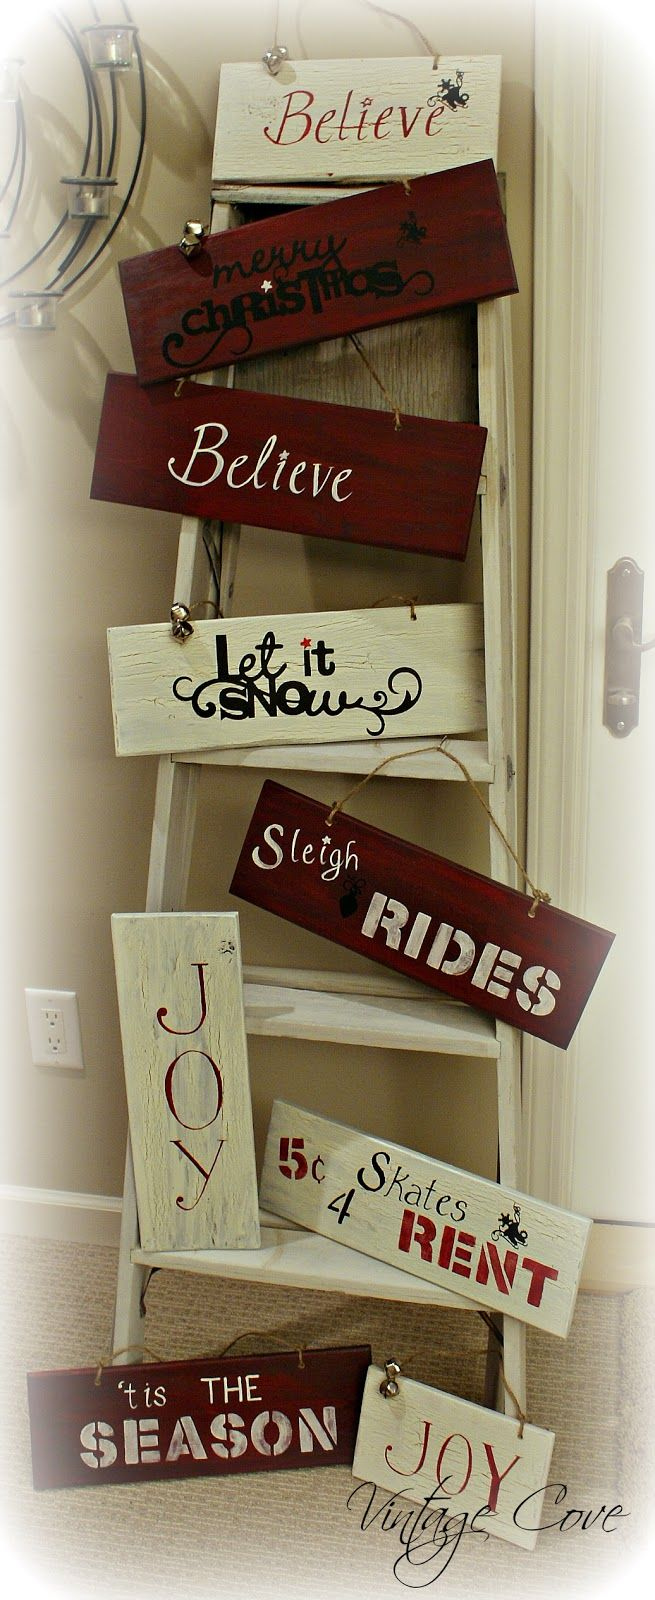 best signs images on pinterest quote stall signs and wooden signs